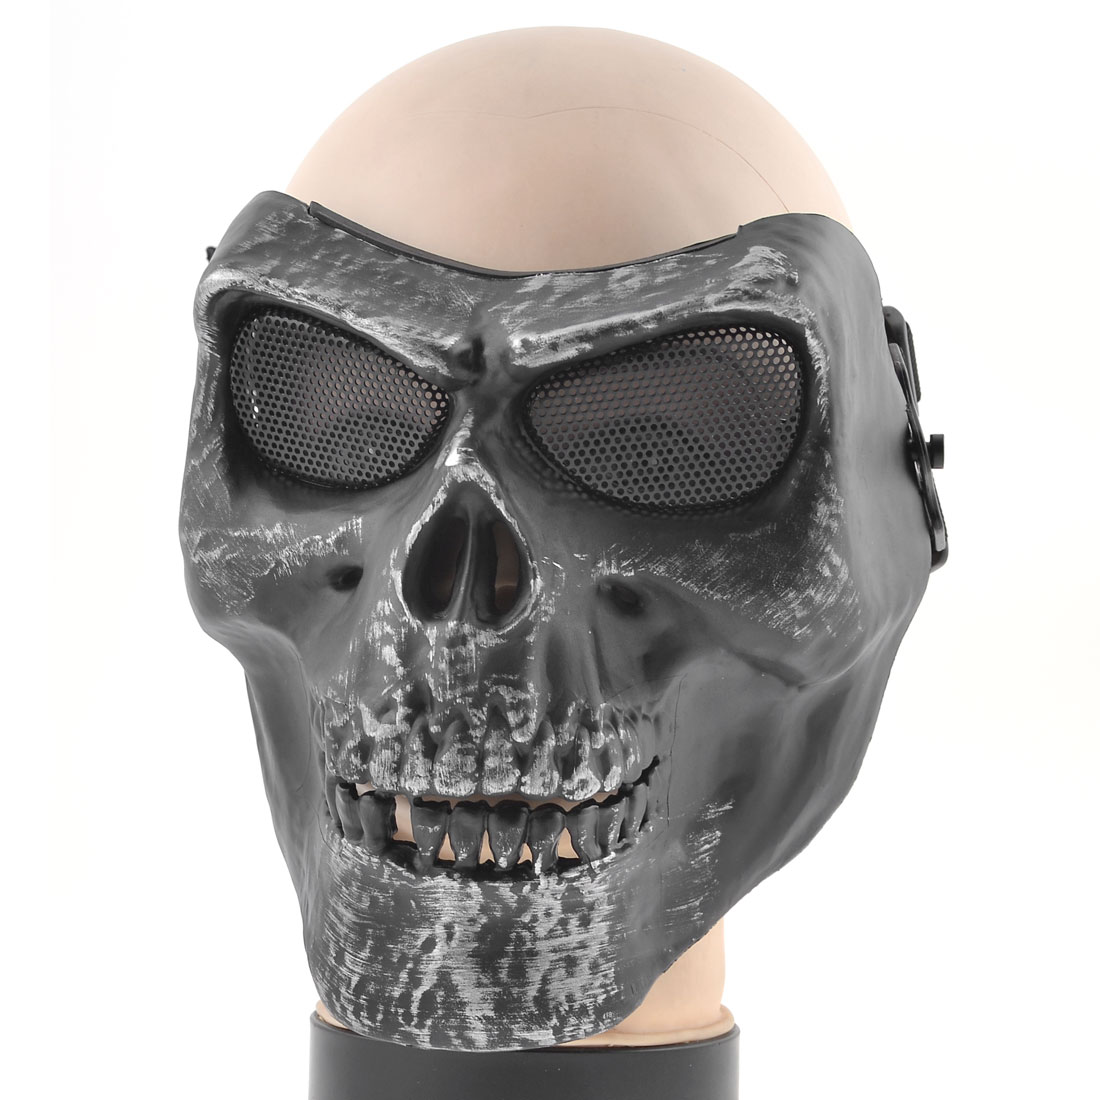 Masquerade Party Skull Facial Plastic Wargame Fighter Mask for Adults